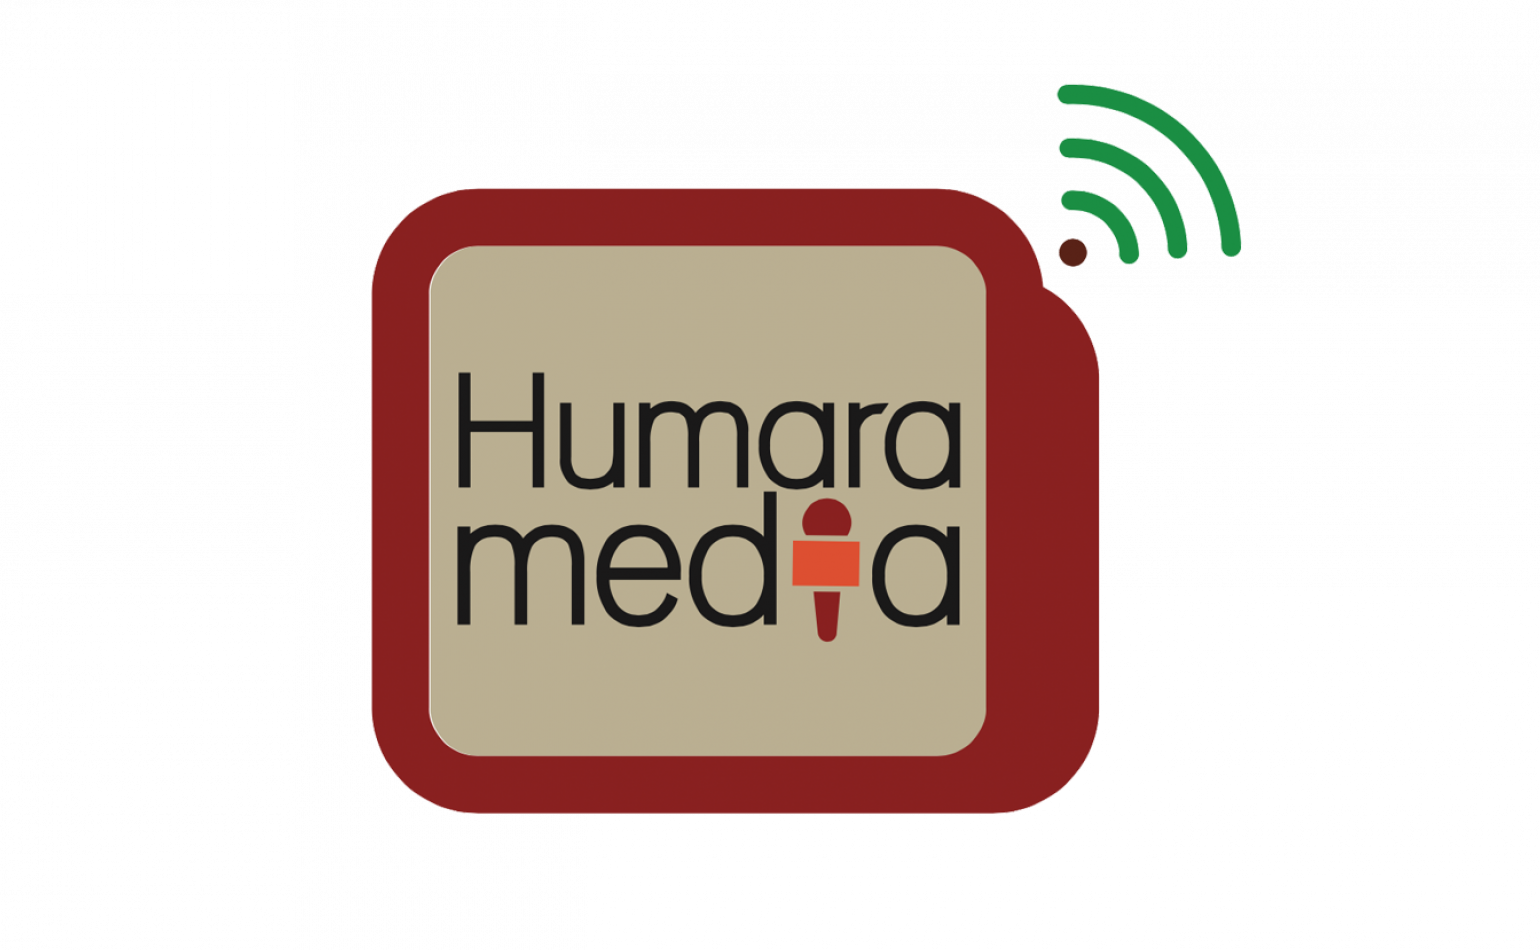 Humara Media — a Web Show in Partnership with Pakistan Coalition for Ethical Journalism